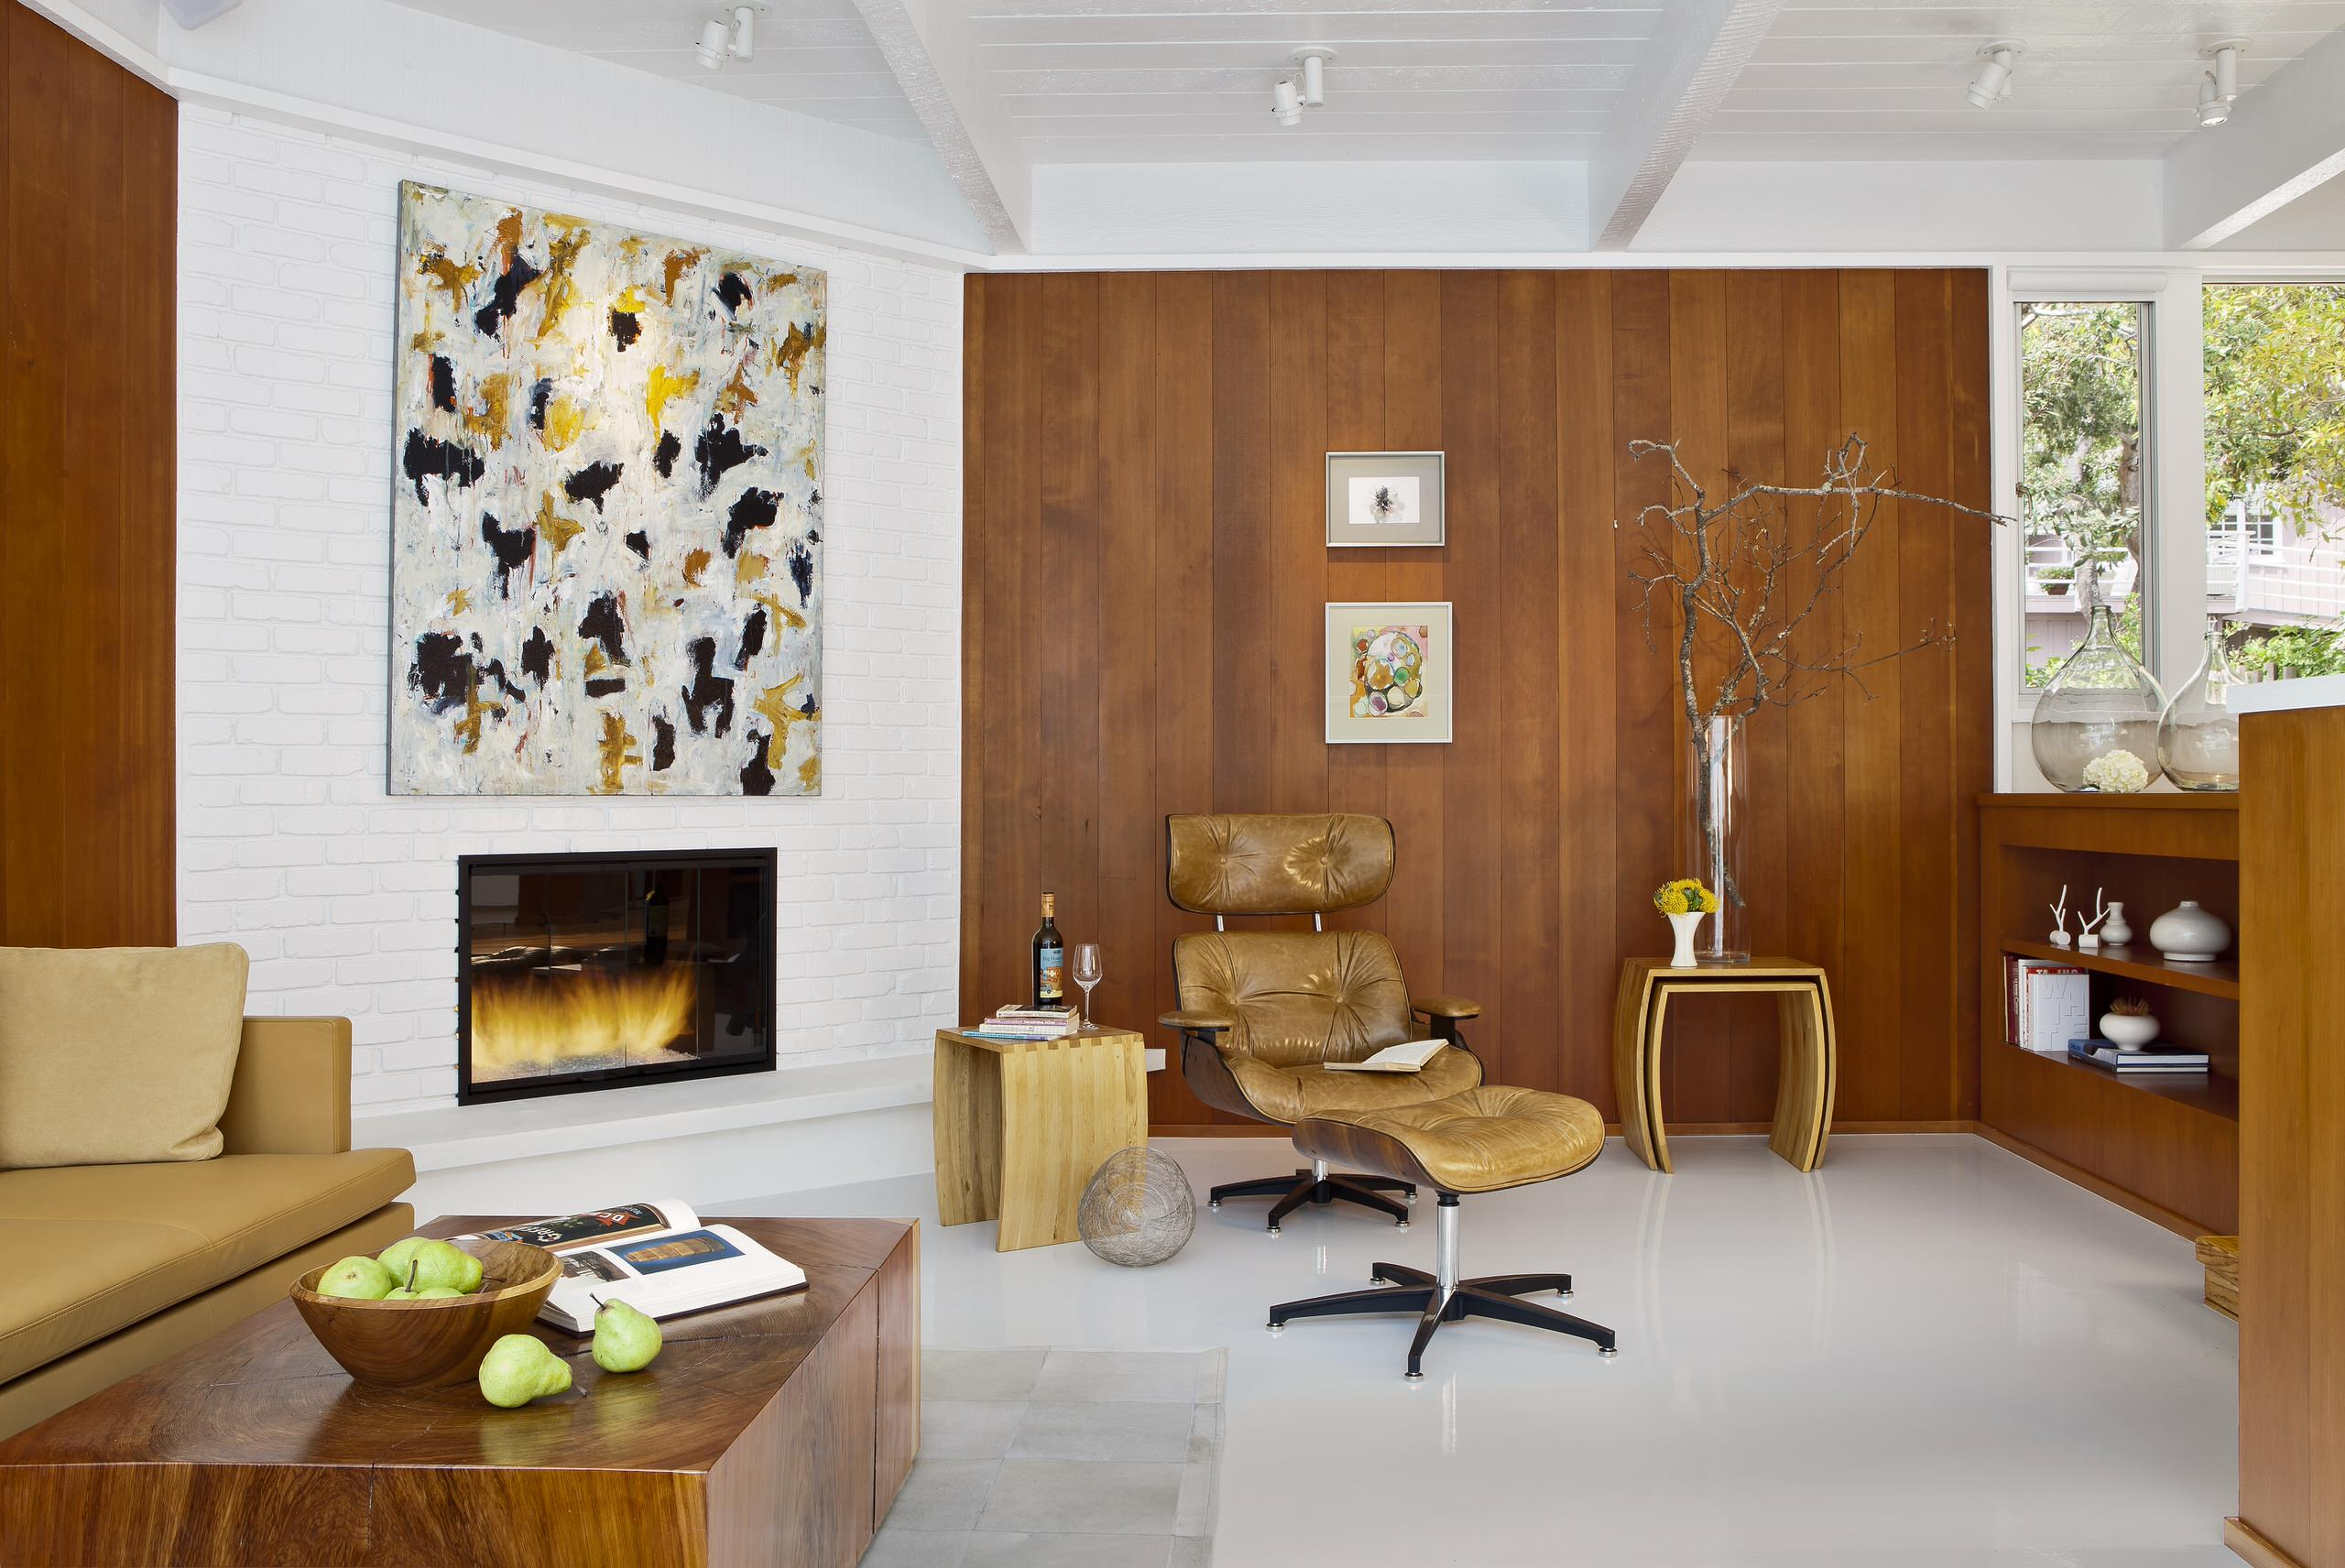 75 Beautiful Mid Century Modern Living Room Pictures Ideas February 2021 Houzz